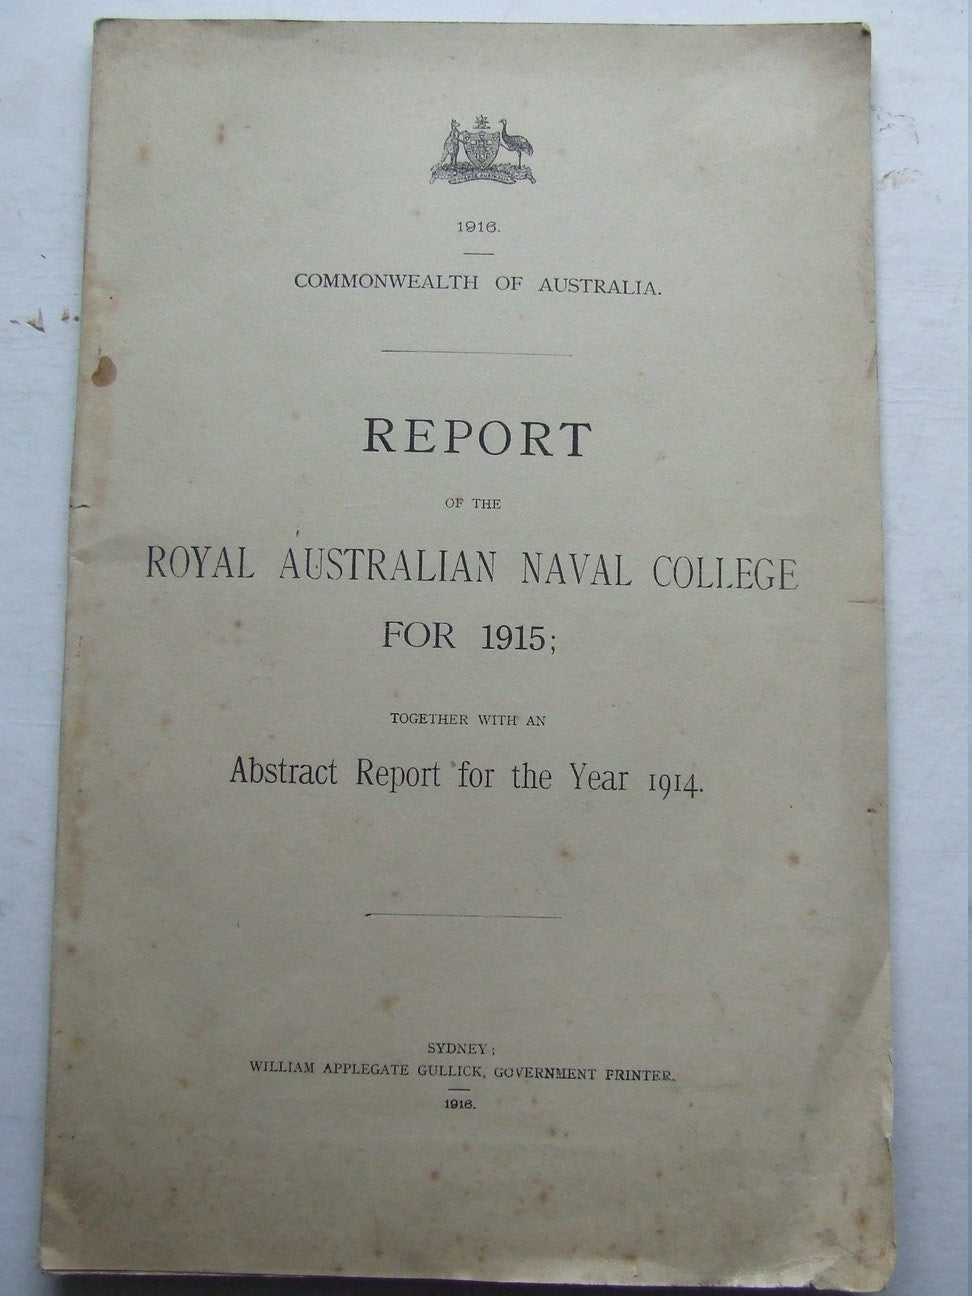 Report of the Royal Australian Naval College for 1915